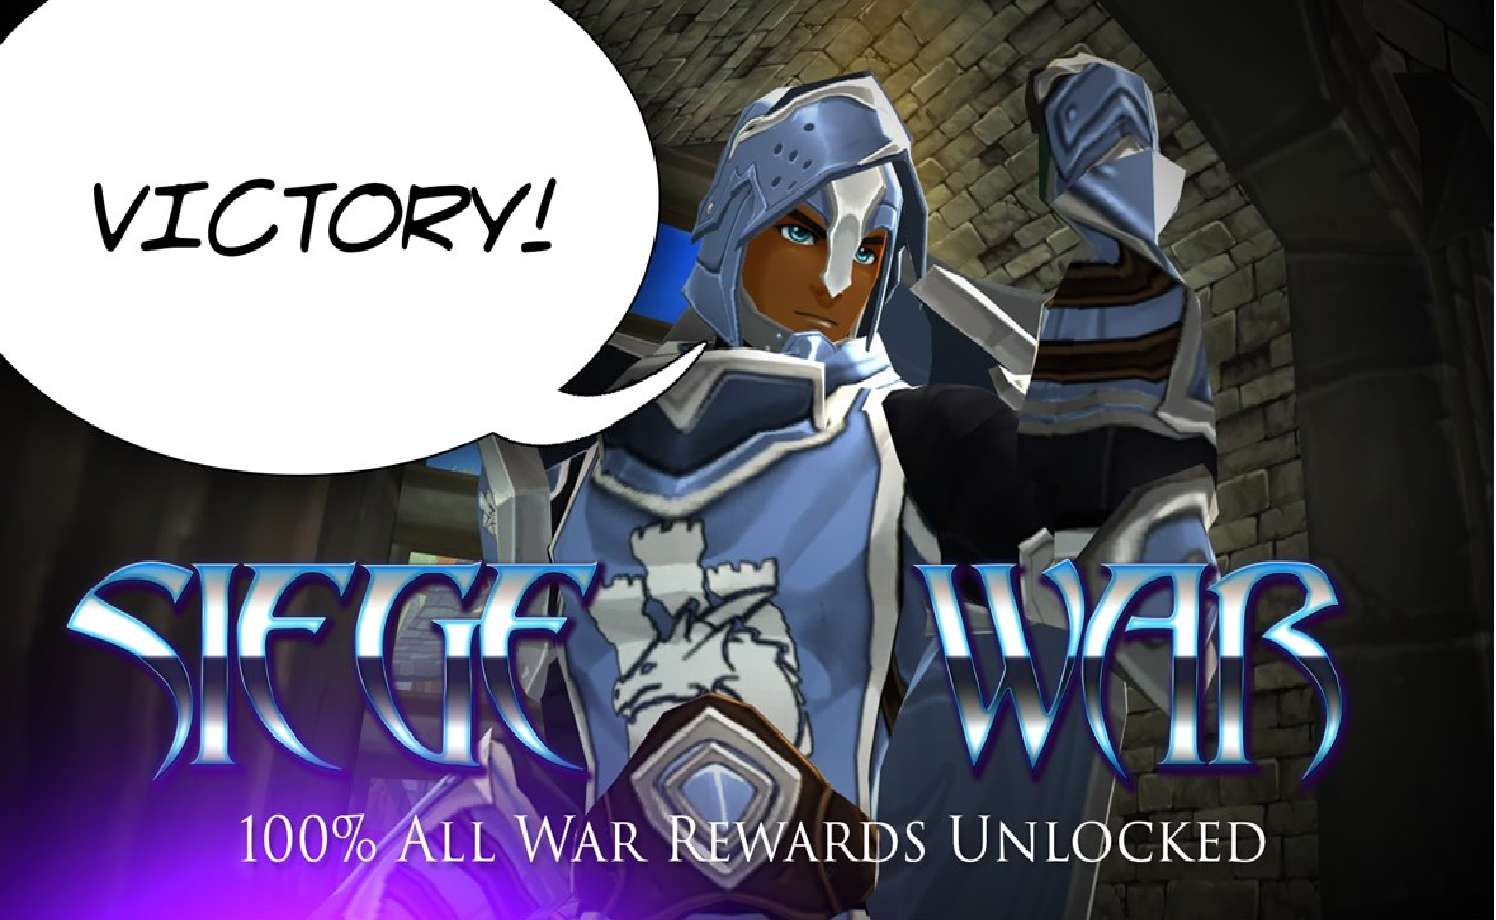 Frost Siege War Now 100% In Adventure Quest 3D, Granting Players Access To All Rewards